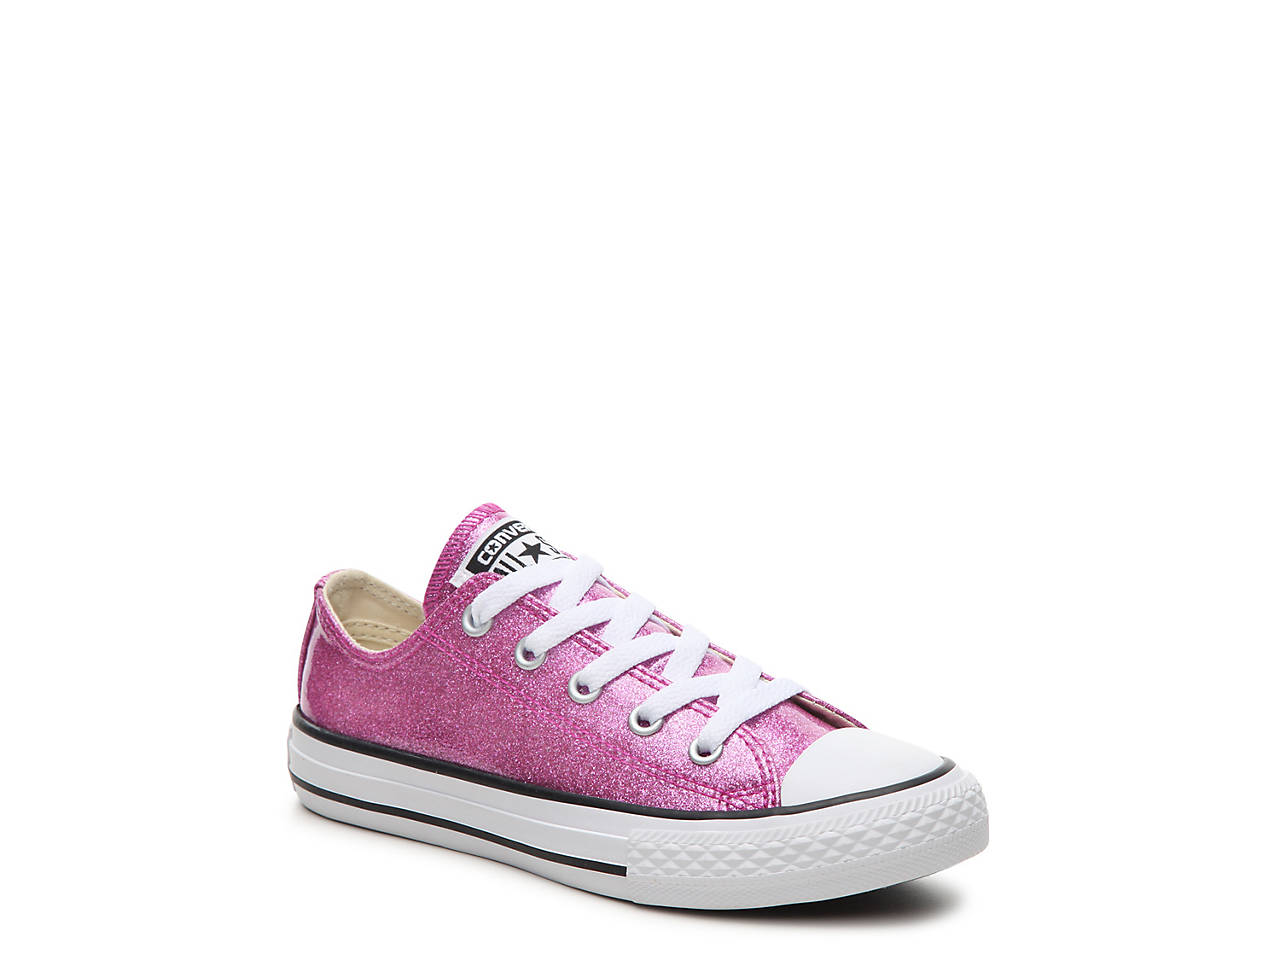 c12144d16c3d Converse Chuck Taylor All Star Glitter Toddler   Youth Sneaker Kids ...